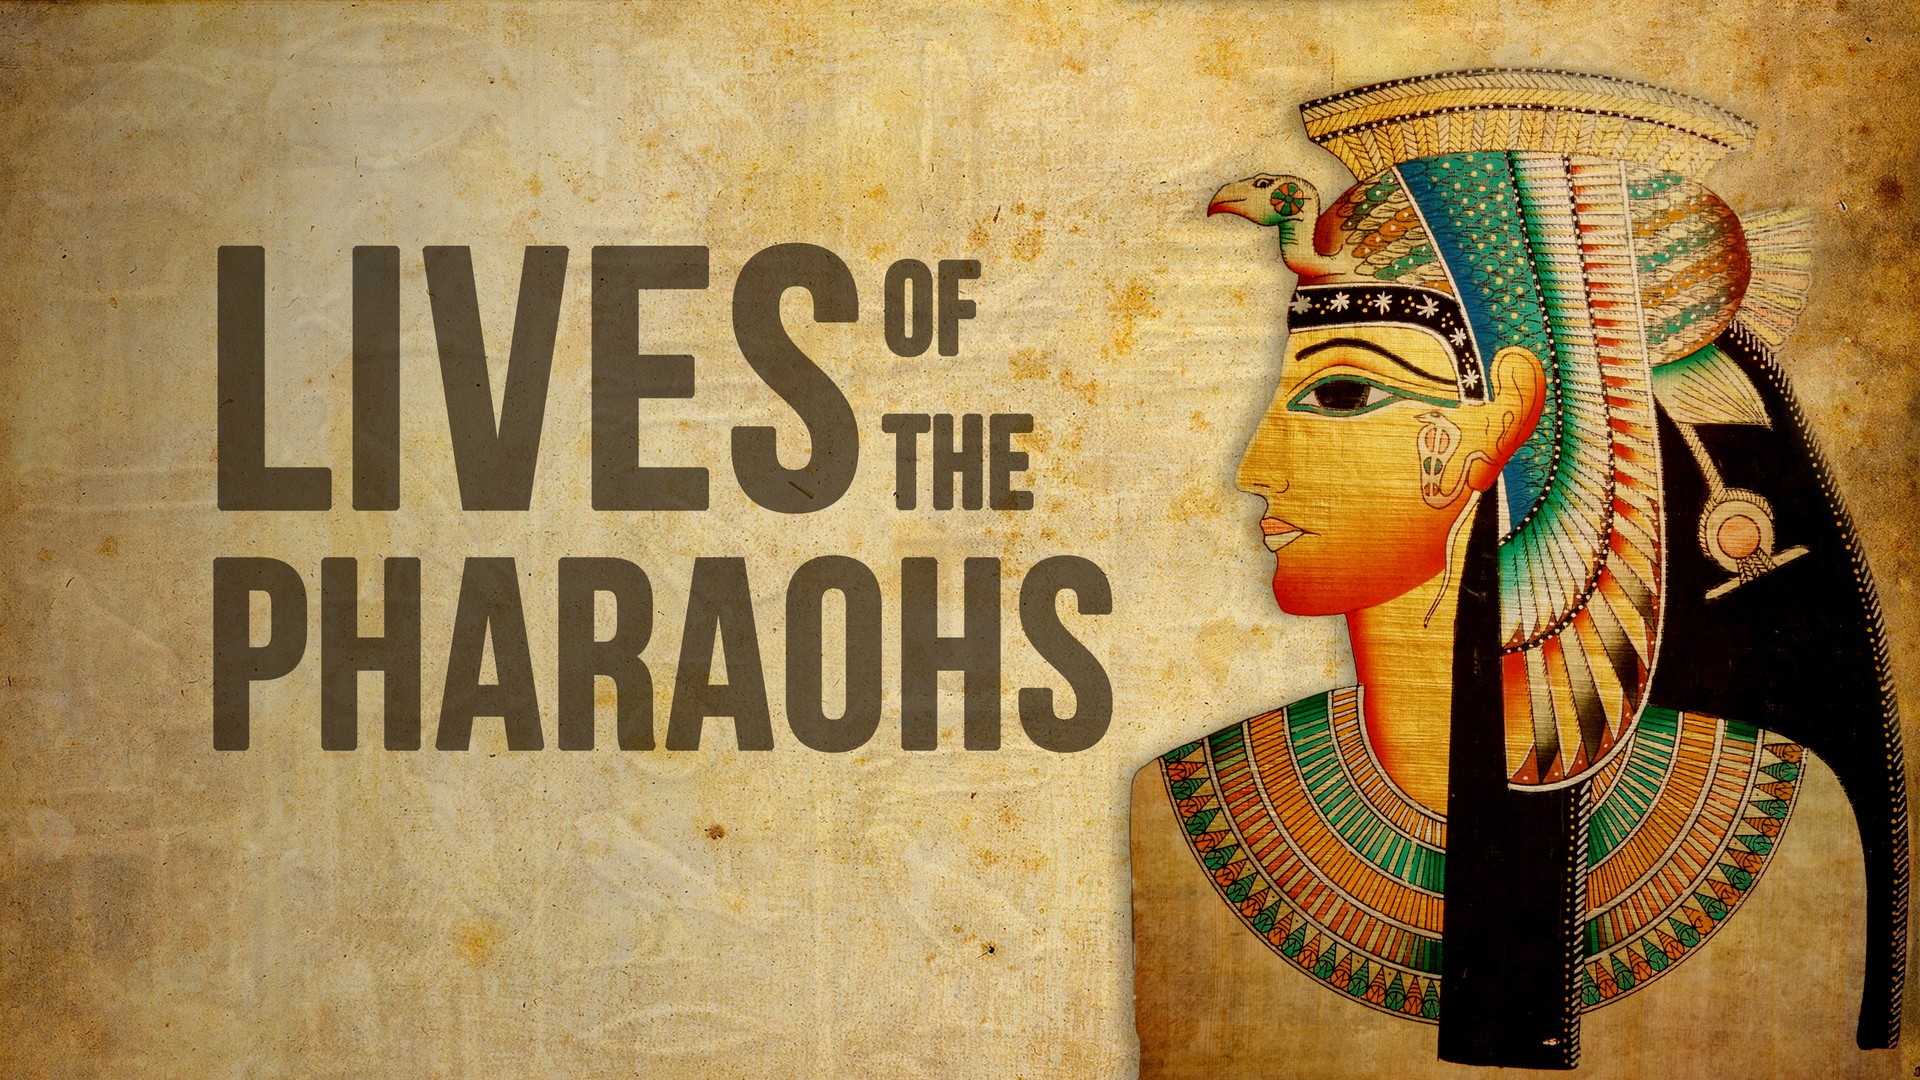 Lives of the Pharaohs